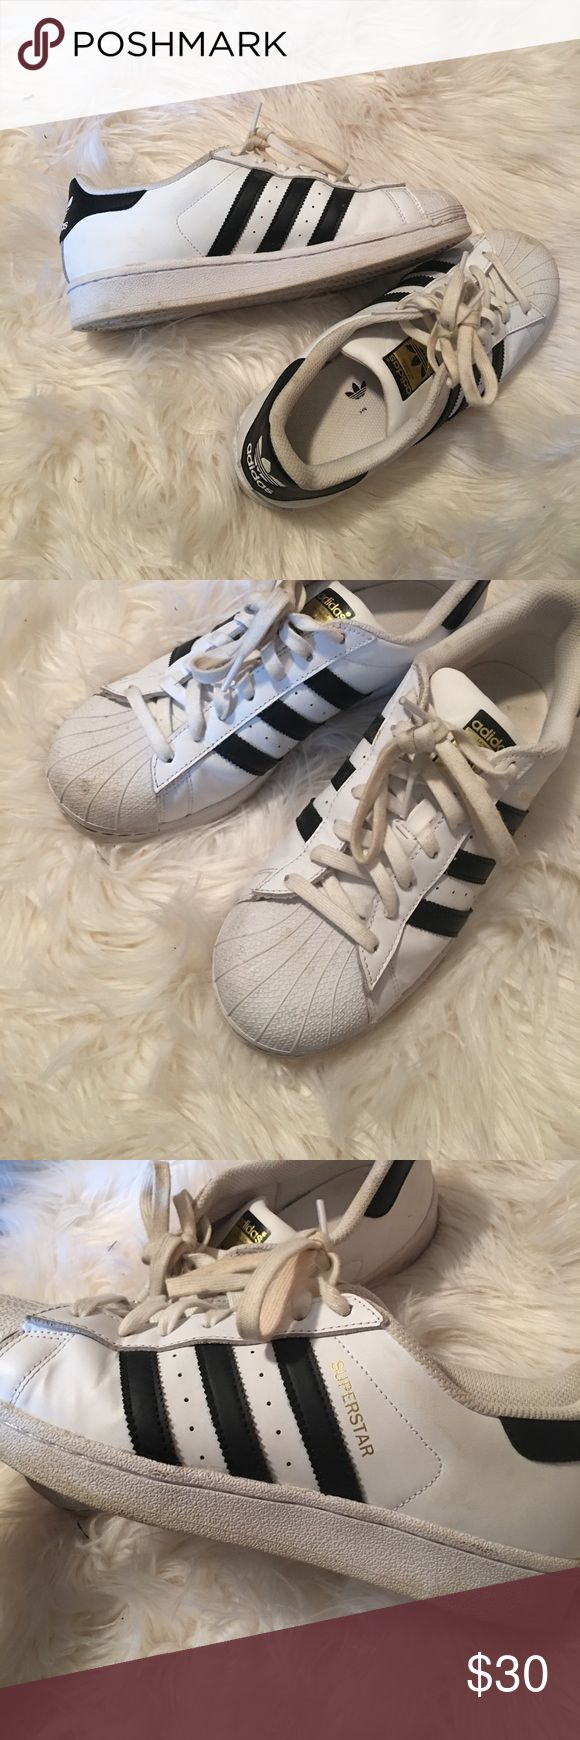 Adidas Superstars ✔️trades are available, only fair pricing  ✔️if posted, item is available  ✔️no holds, or drama ✔️make an offer, will most likely accept!  ✔️ all items are in new or great condition adidas Shoes Sneakers